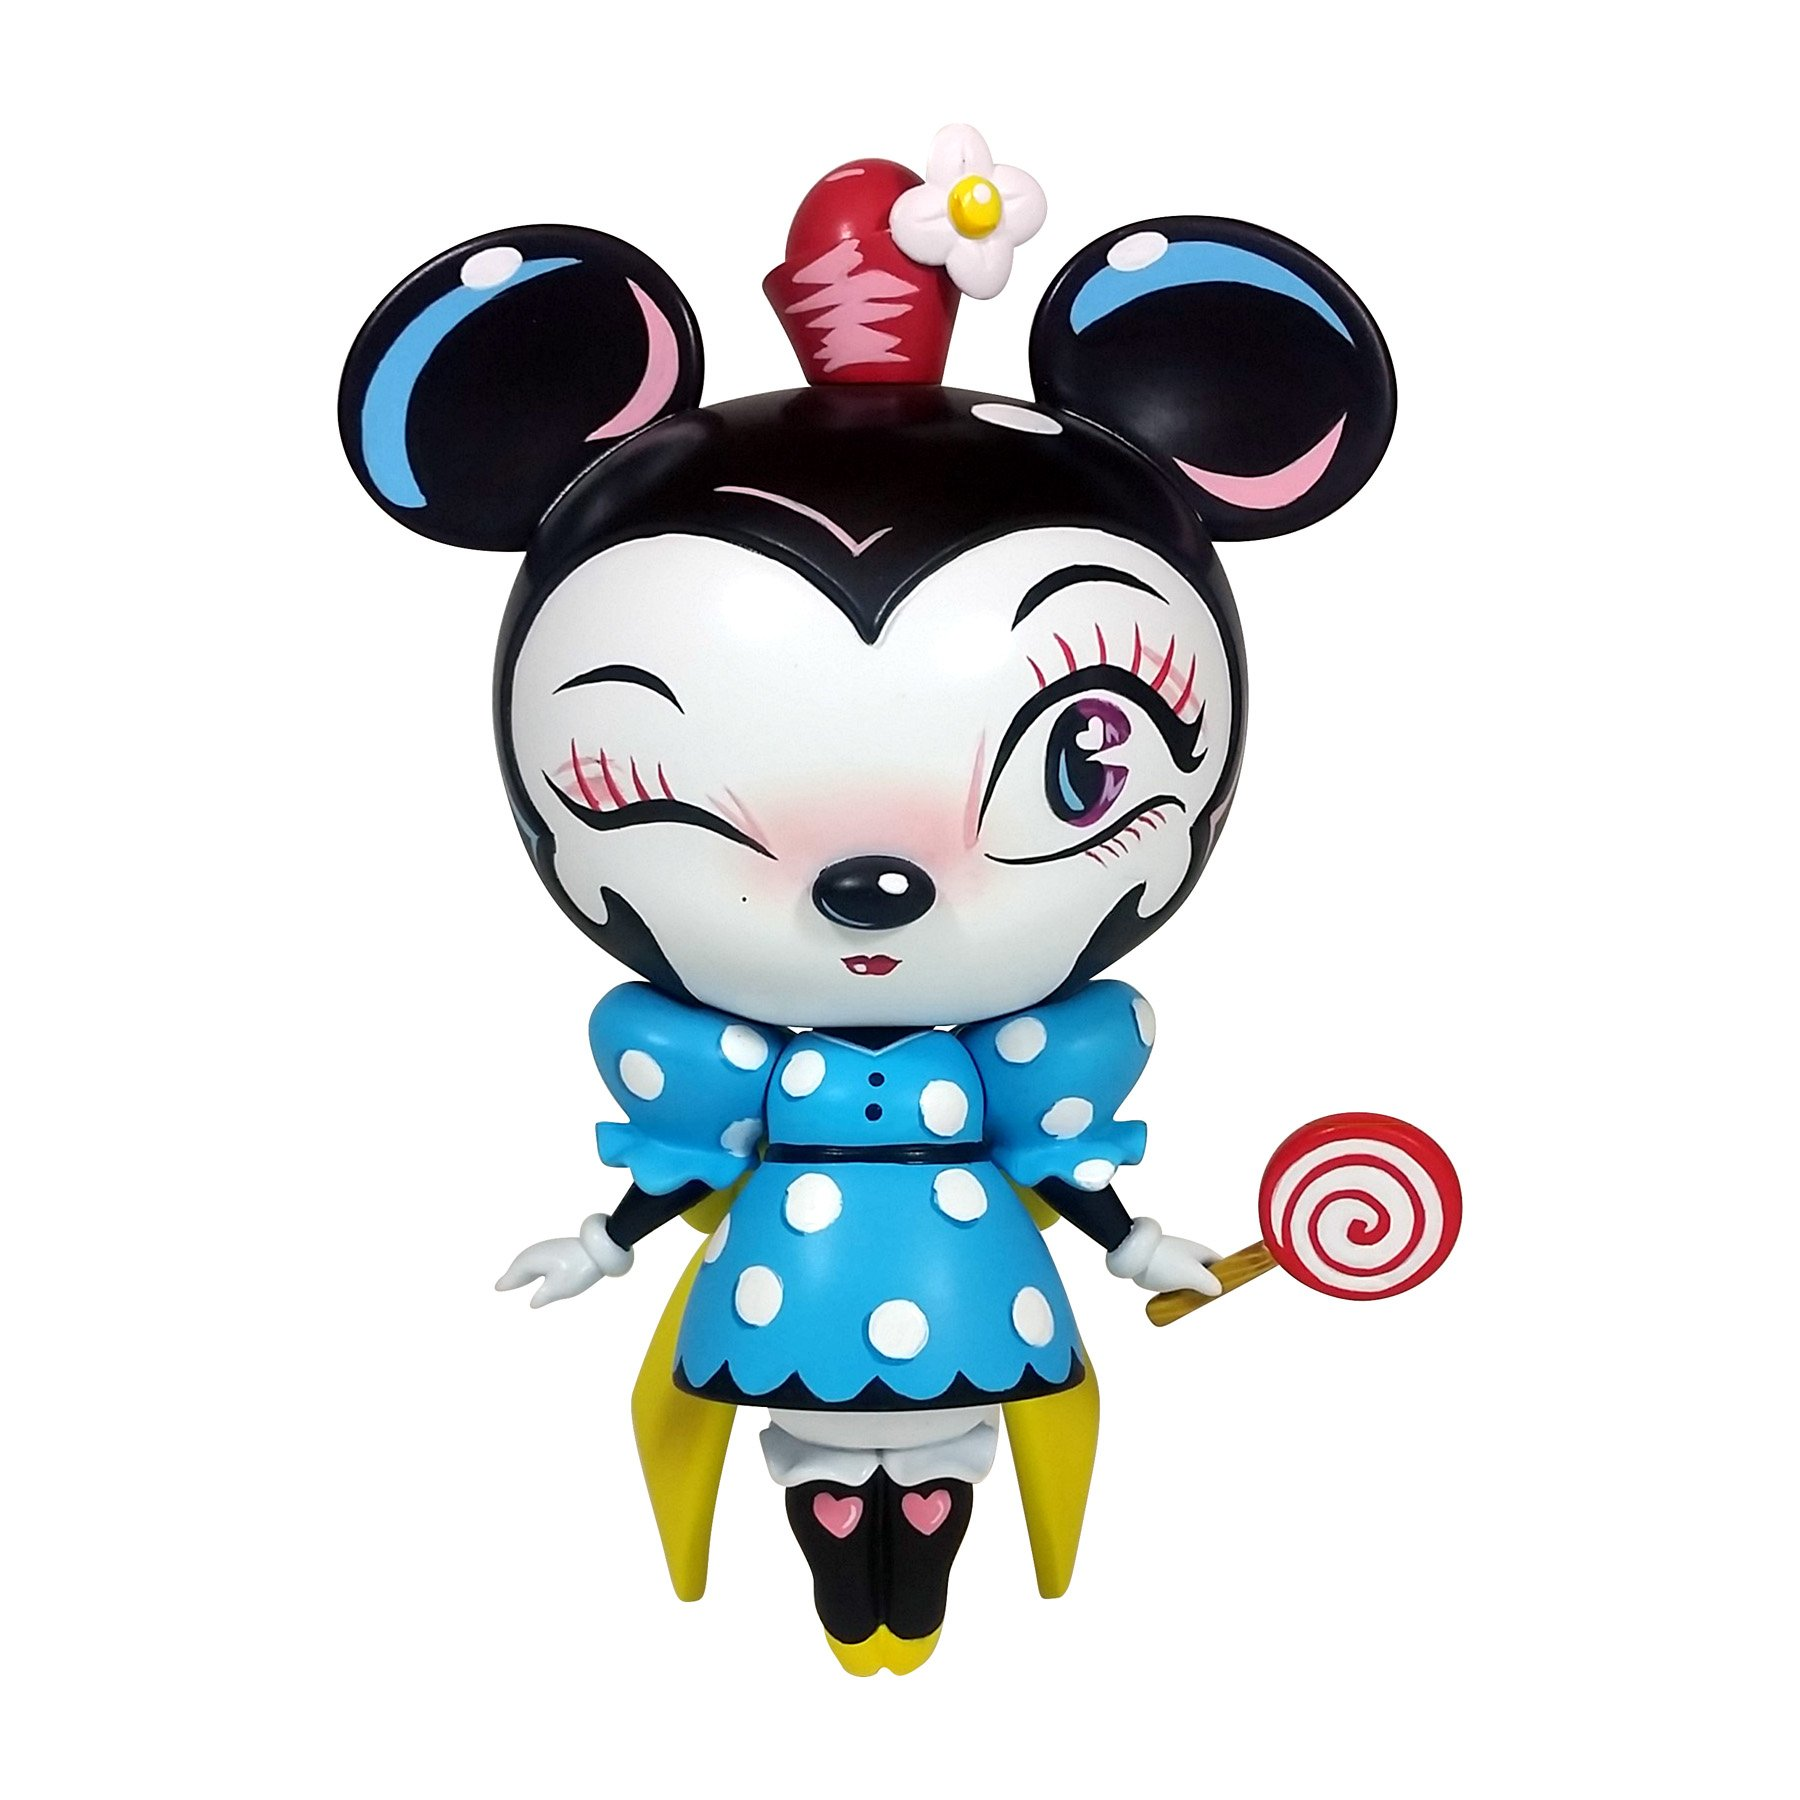 World of Miss Mindy Disney Minnie Mouse Vinyl Statue